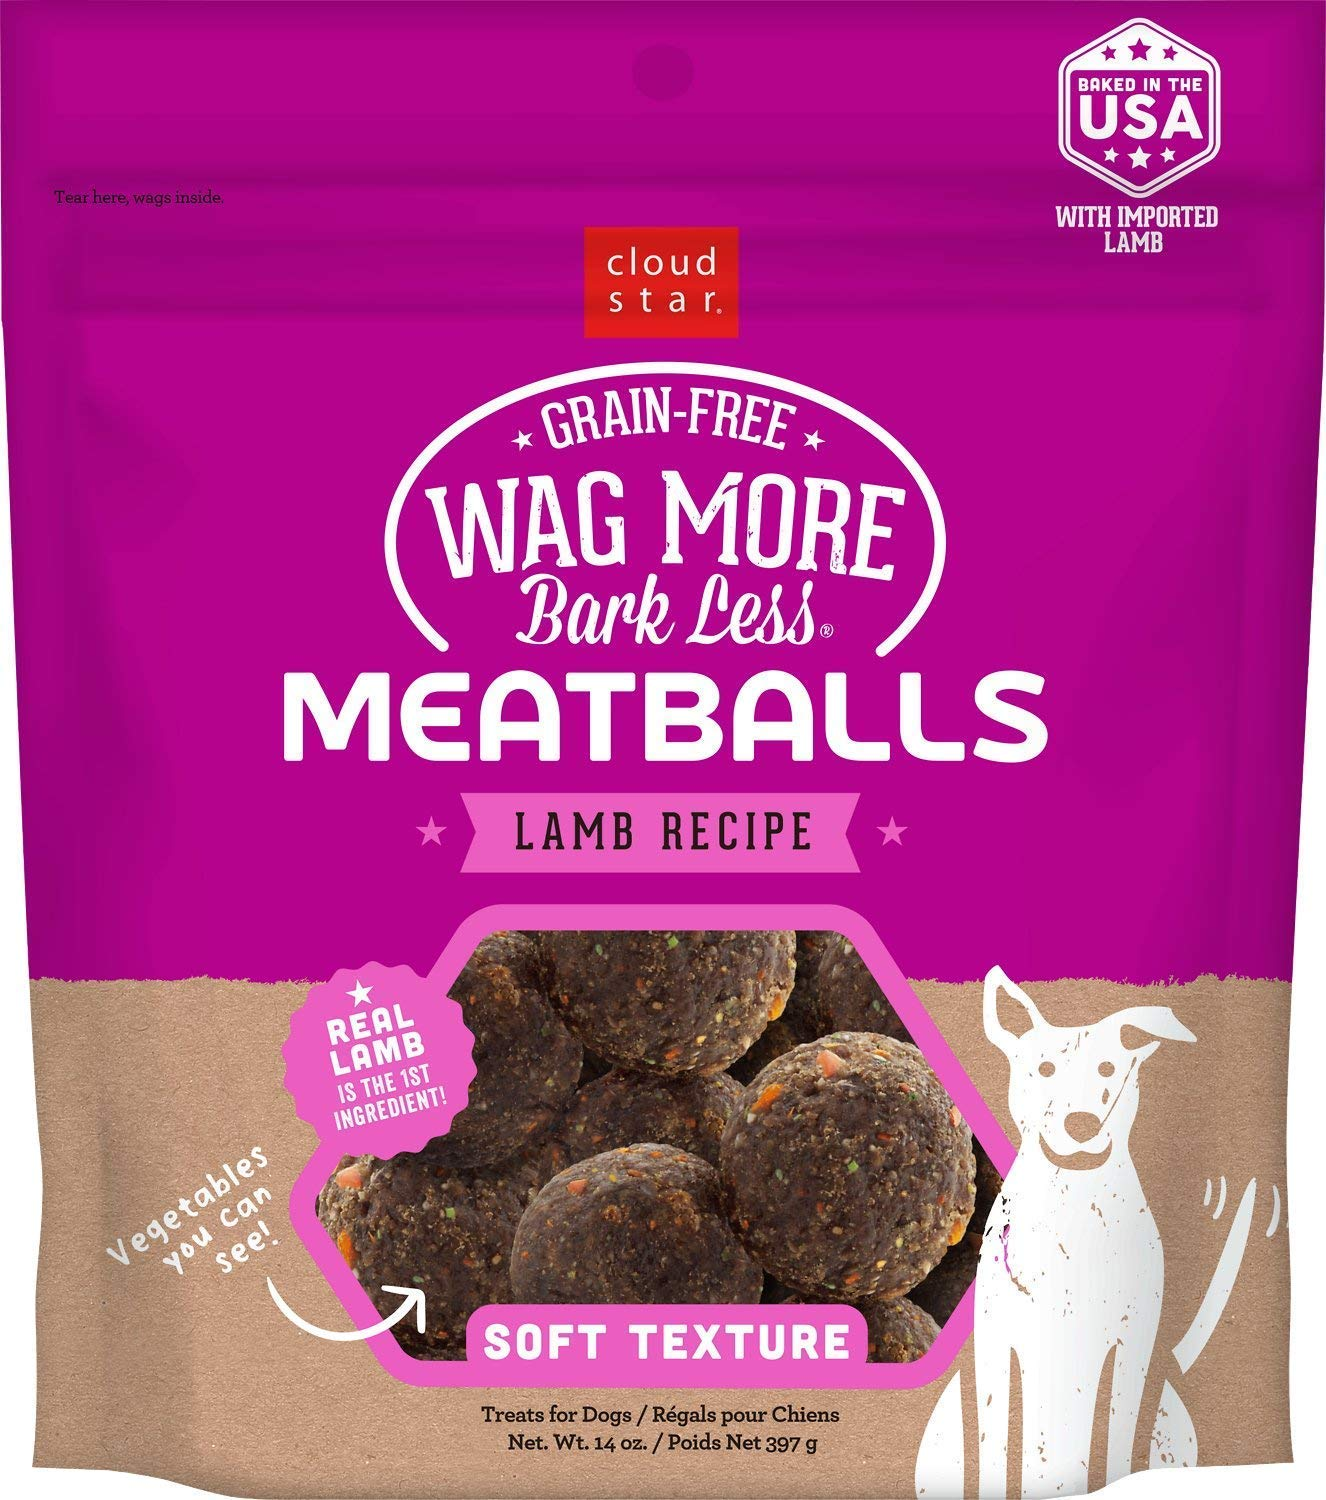 Cloud Star Wag More Bark Less Grain Free Meatballs Lamb Recipe 14 oz. by Cloud Star